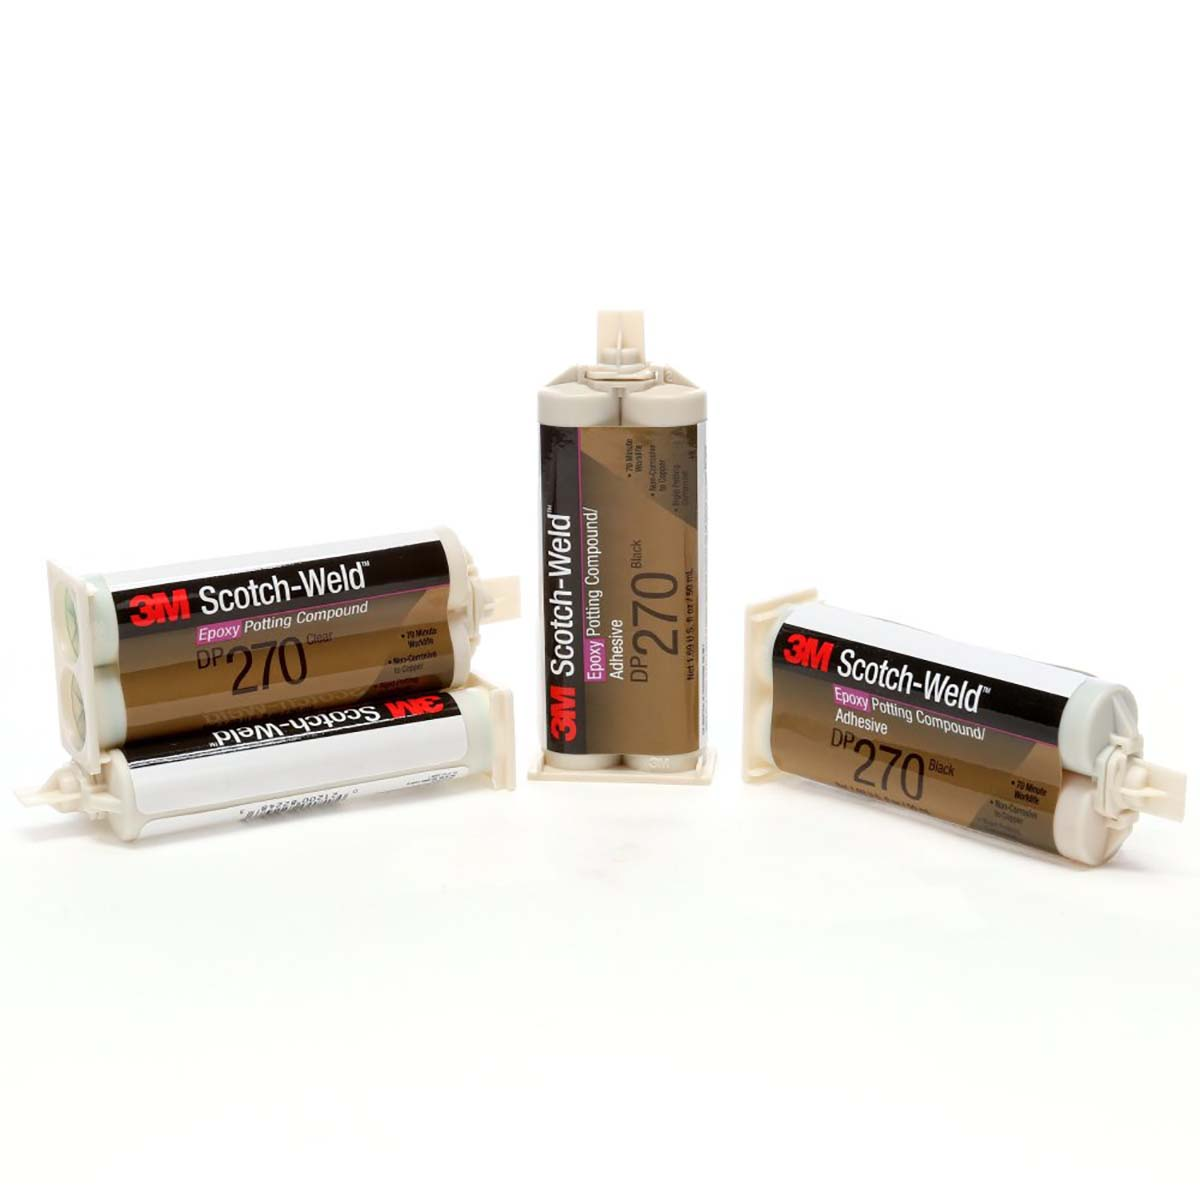 3M Scotch-Weld Epoxy Potting Compound DP270 Clear, 400 mL, 6 per case